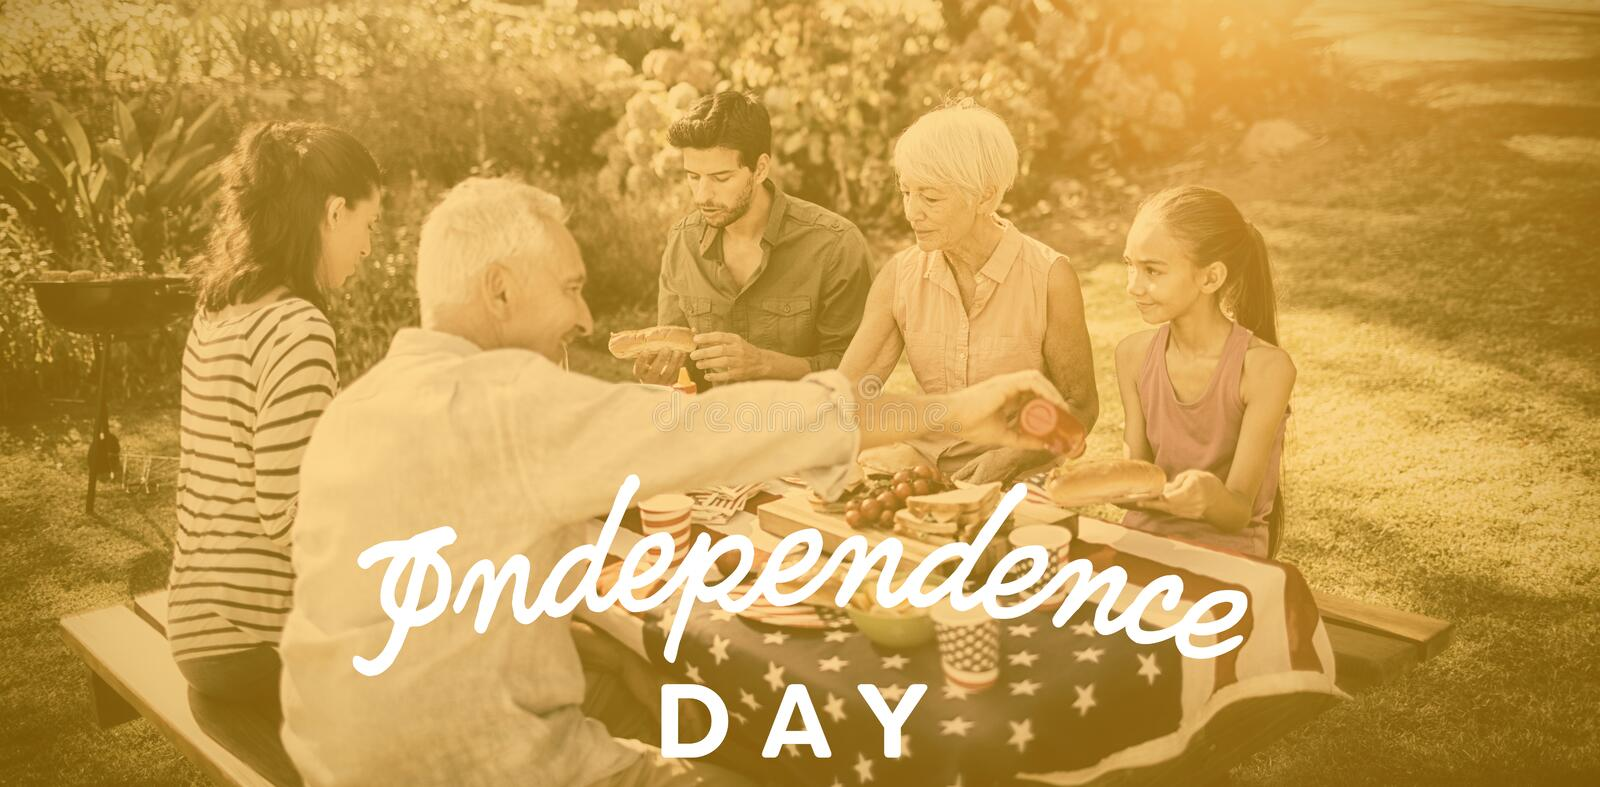 Composite image of independence day text against white background stock illustration